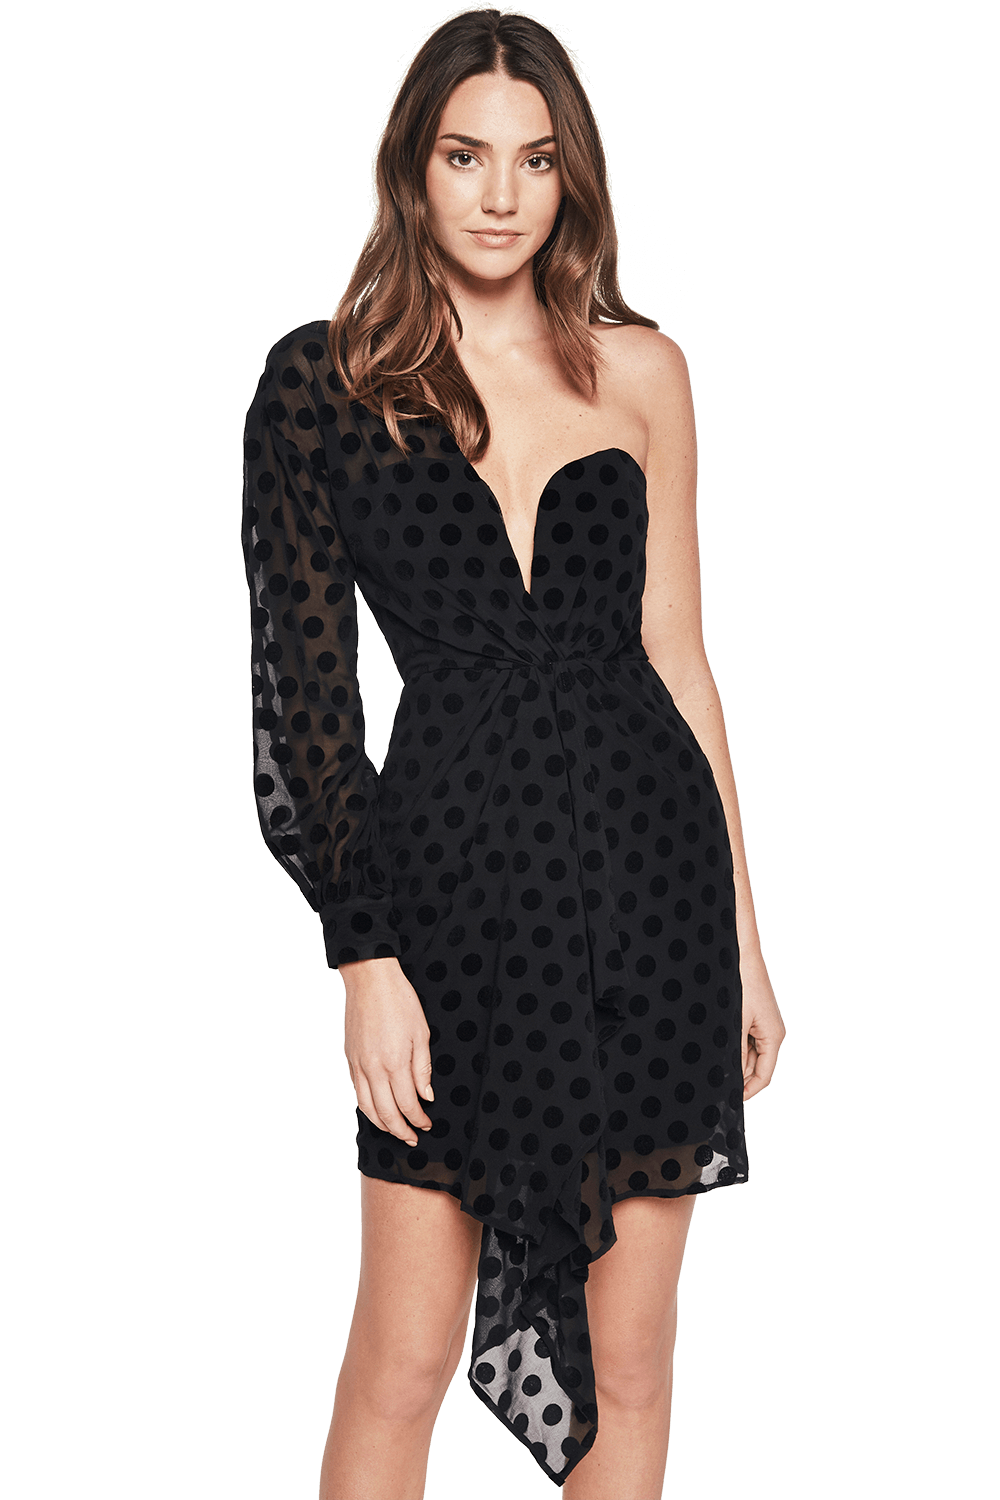 VELVET SPOT DRESS in colour CAVIAR